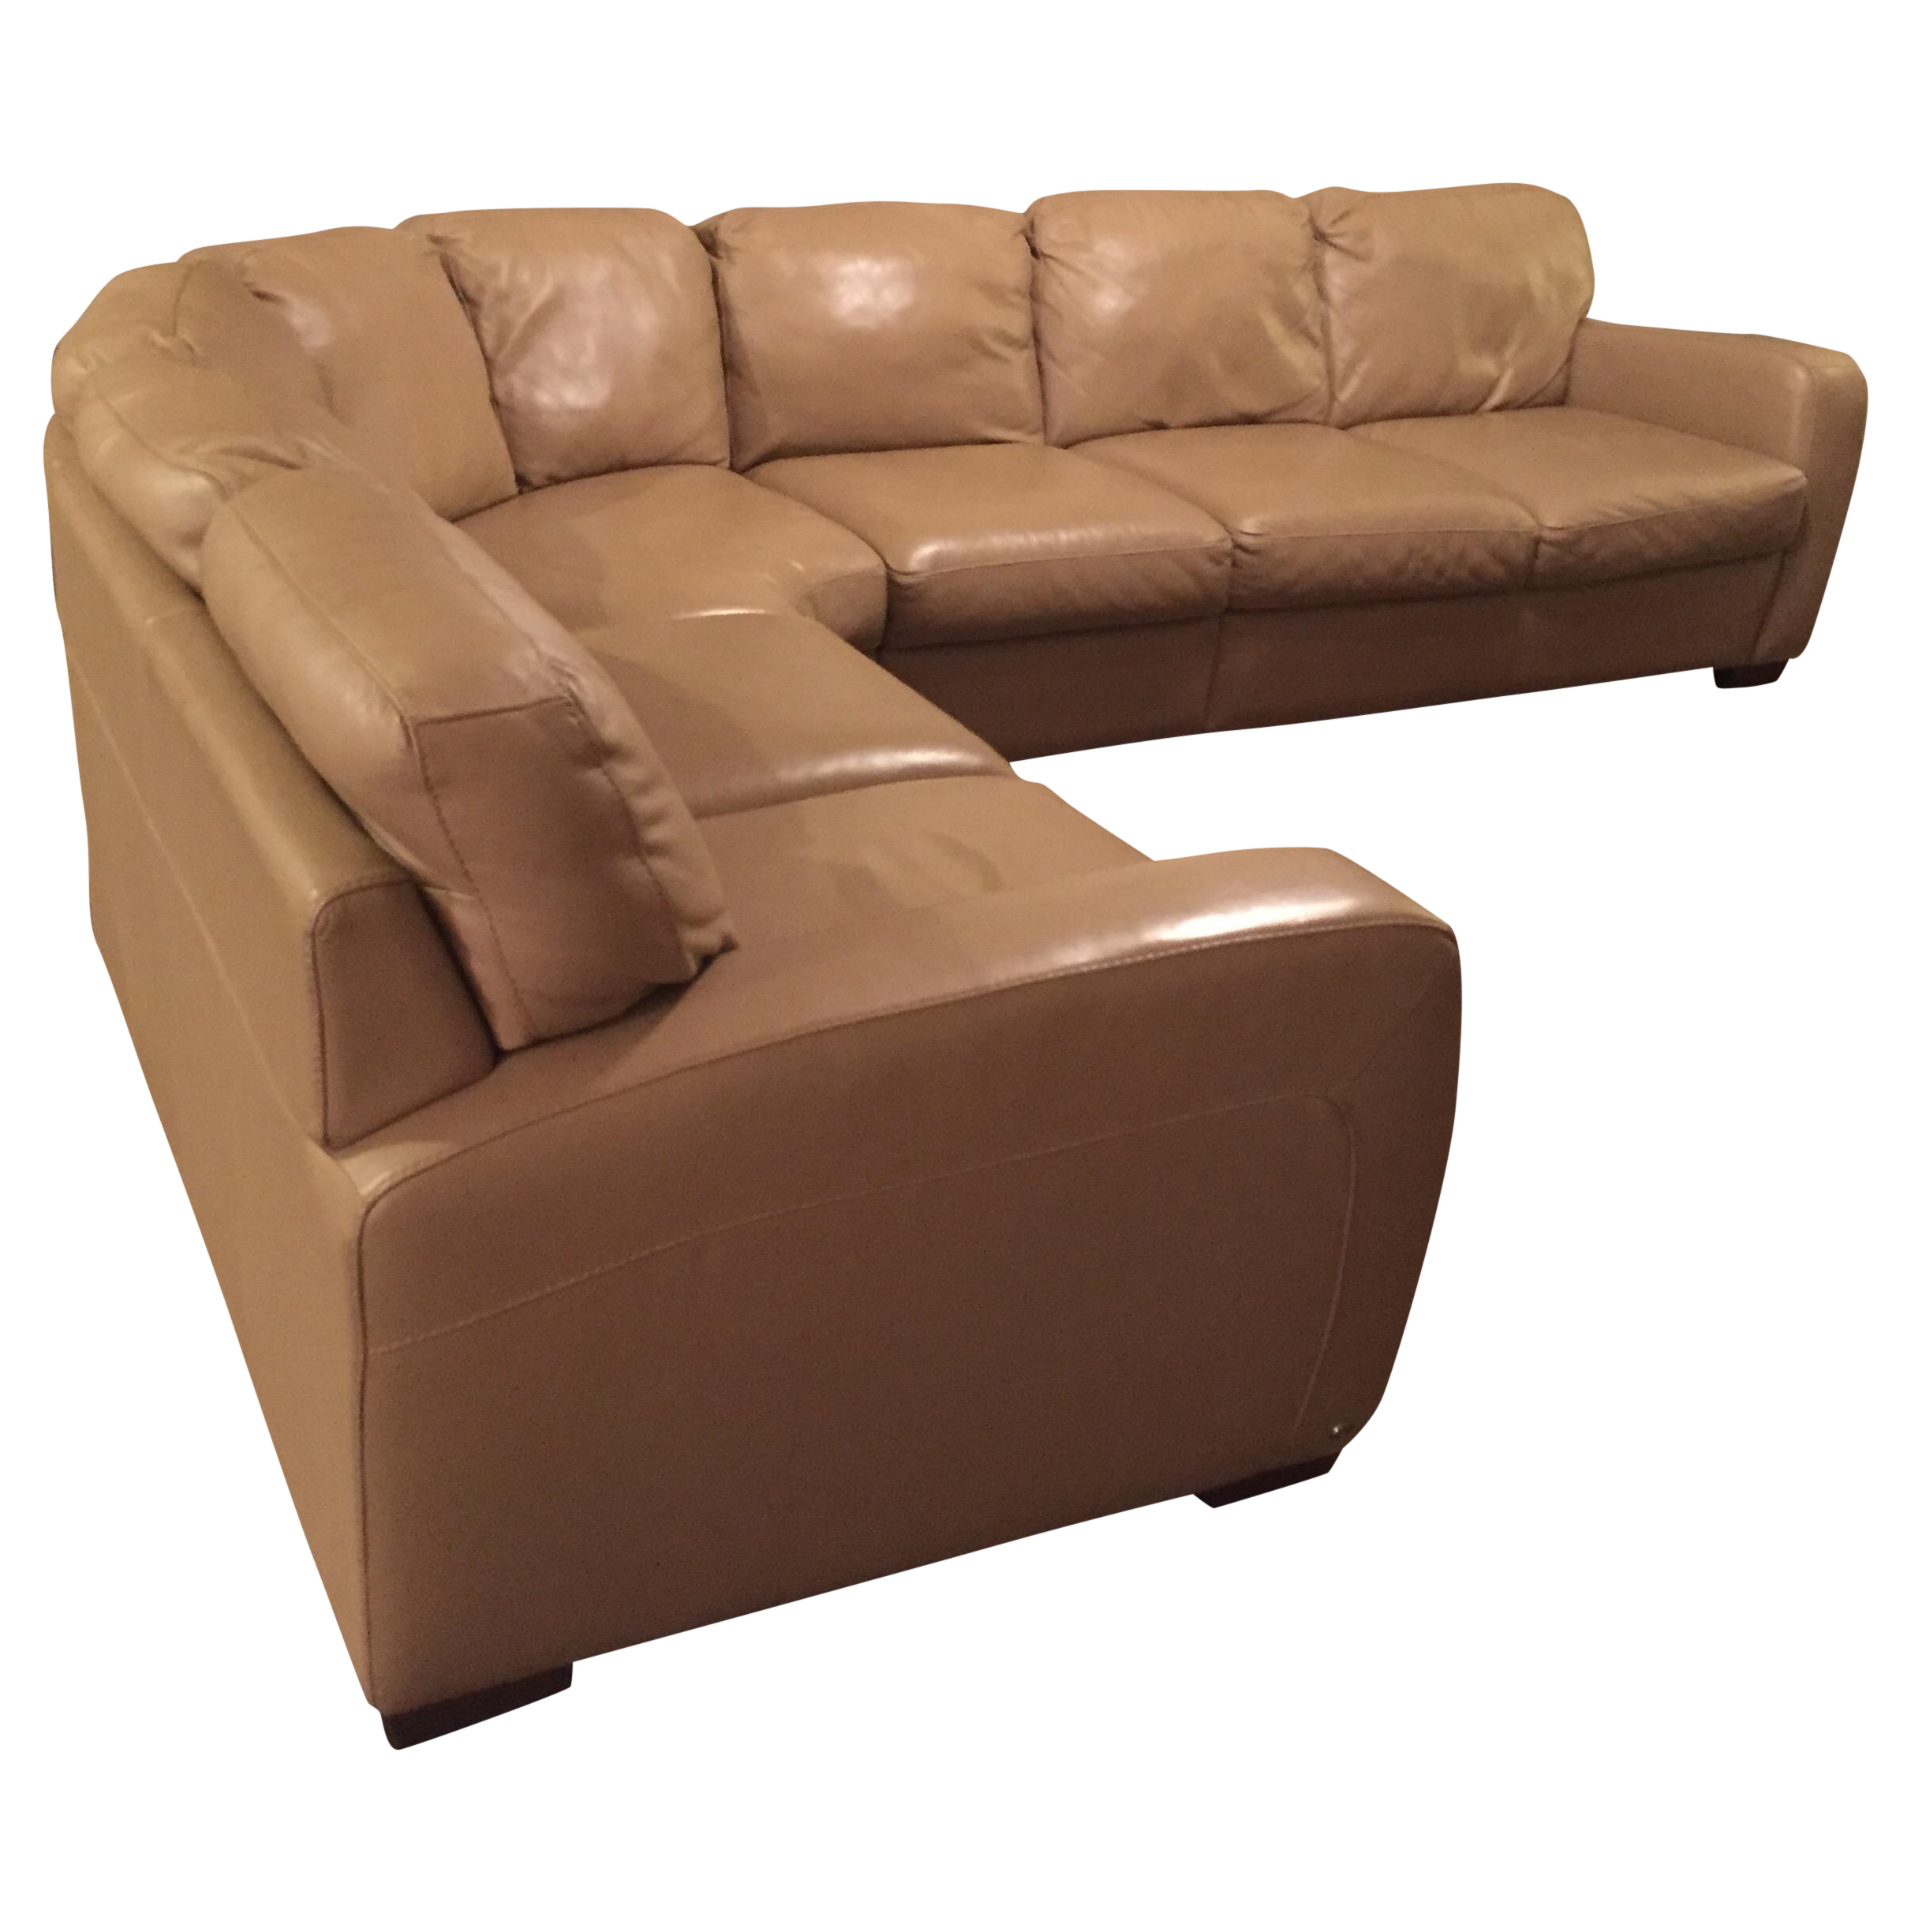 Natuzzi Leather Sectional Sofa Leather sectional Leather